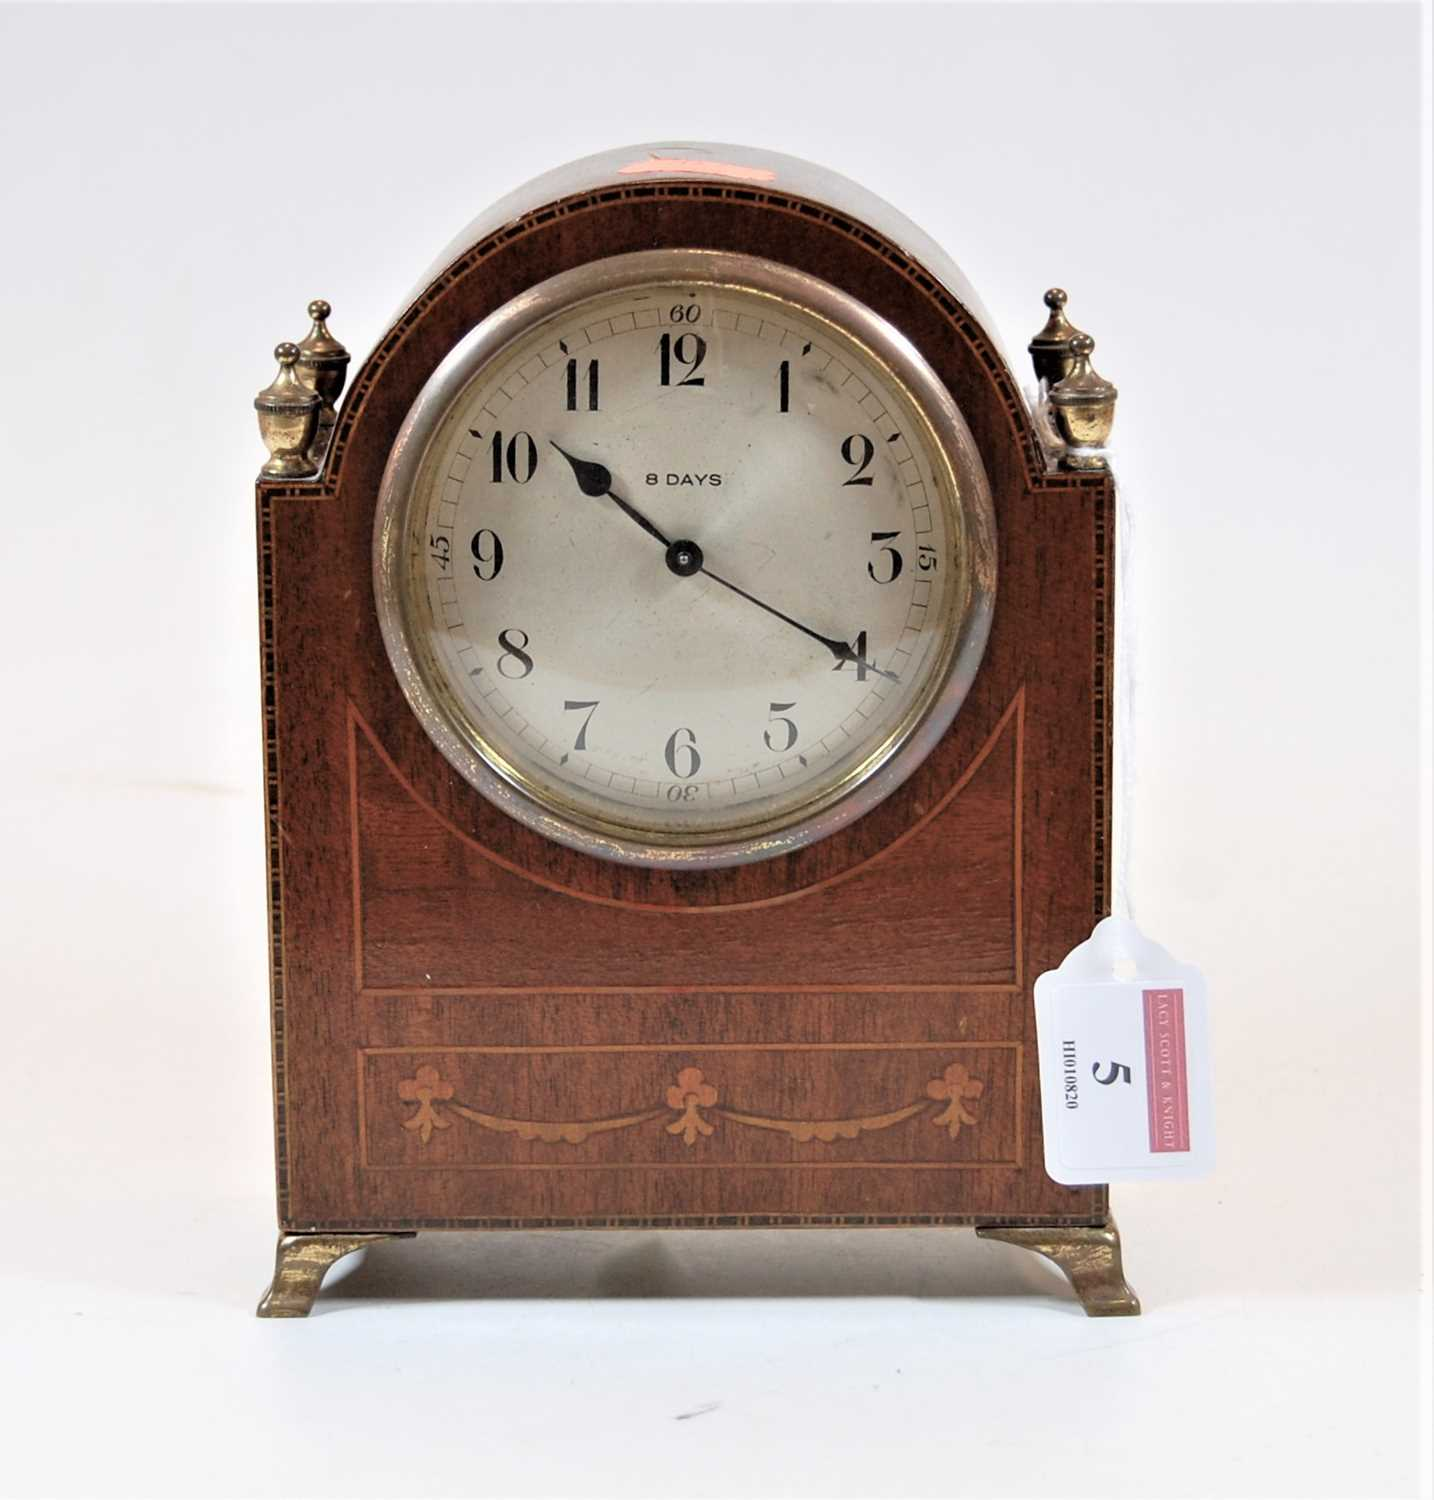 Lot 5 - A 1920s mahogany cased and chequer strung mantel clock, having a convex silvered dial with Arabic